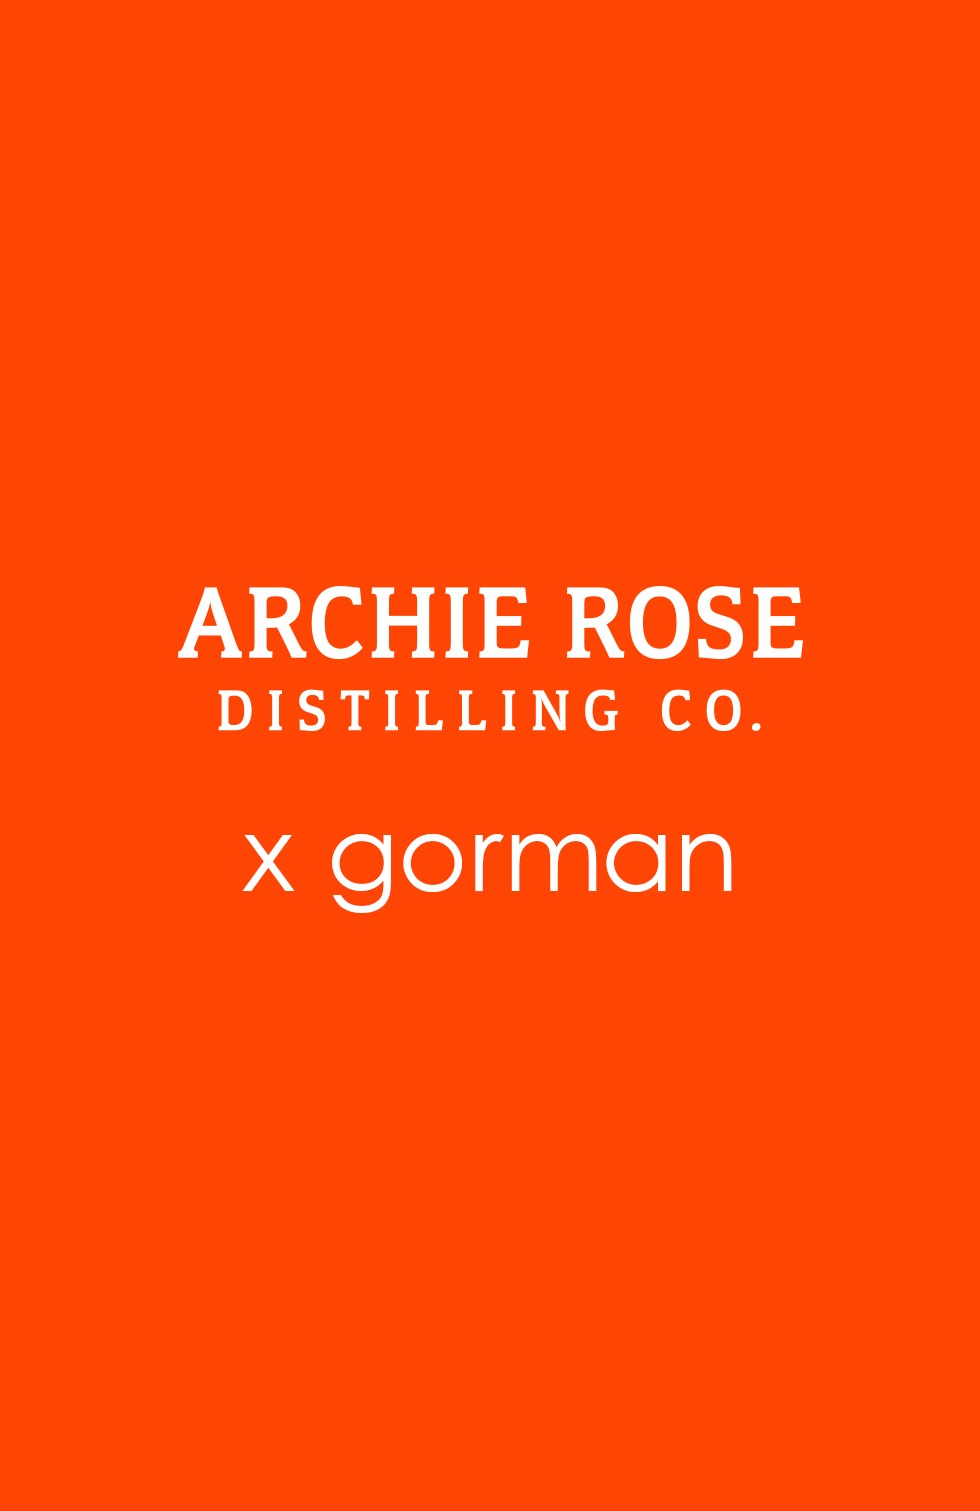 Archie Rose x gorman